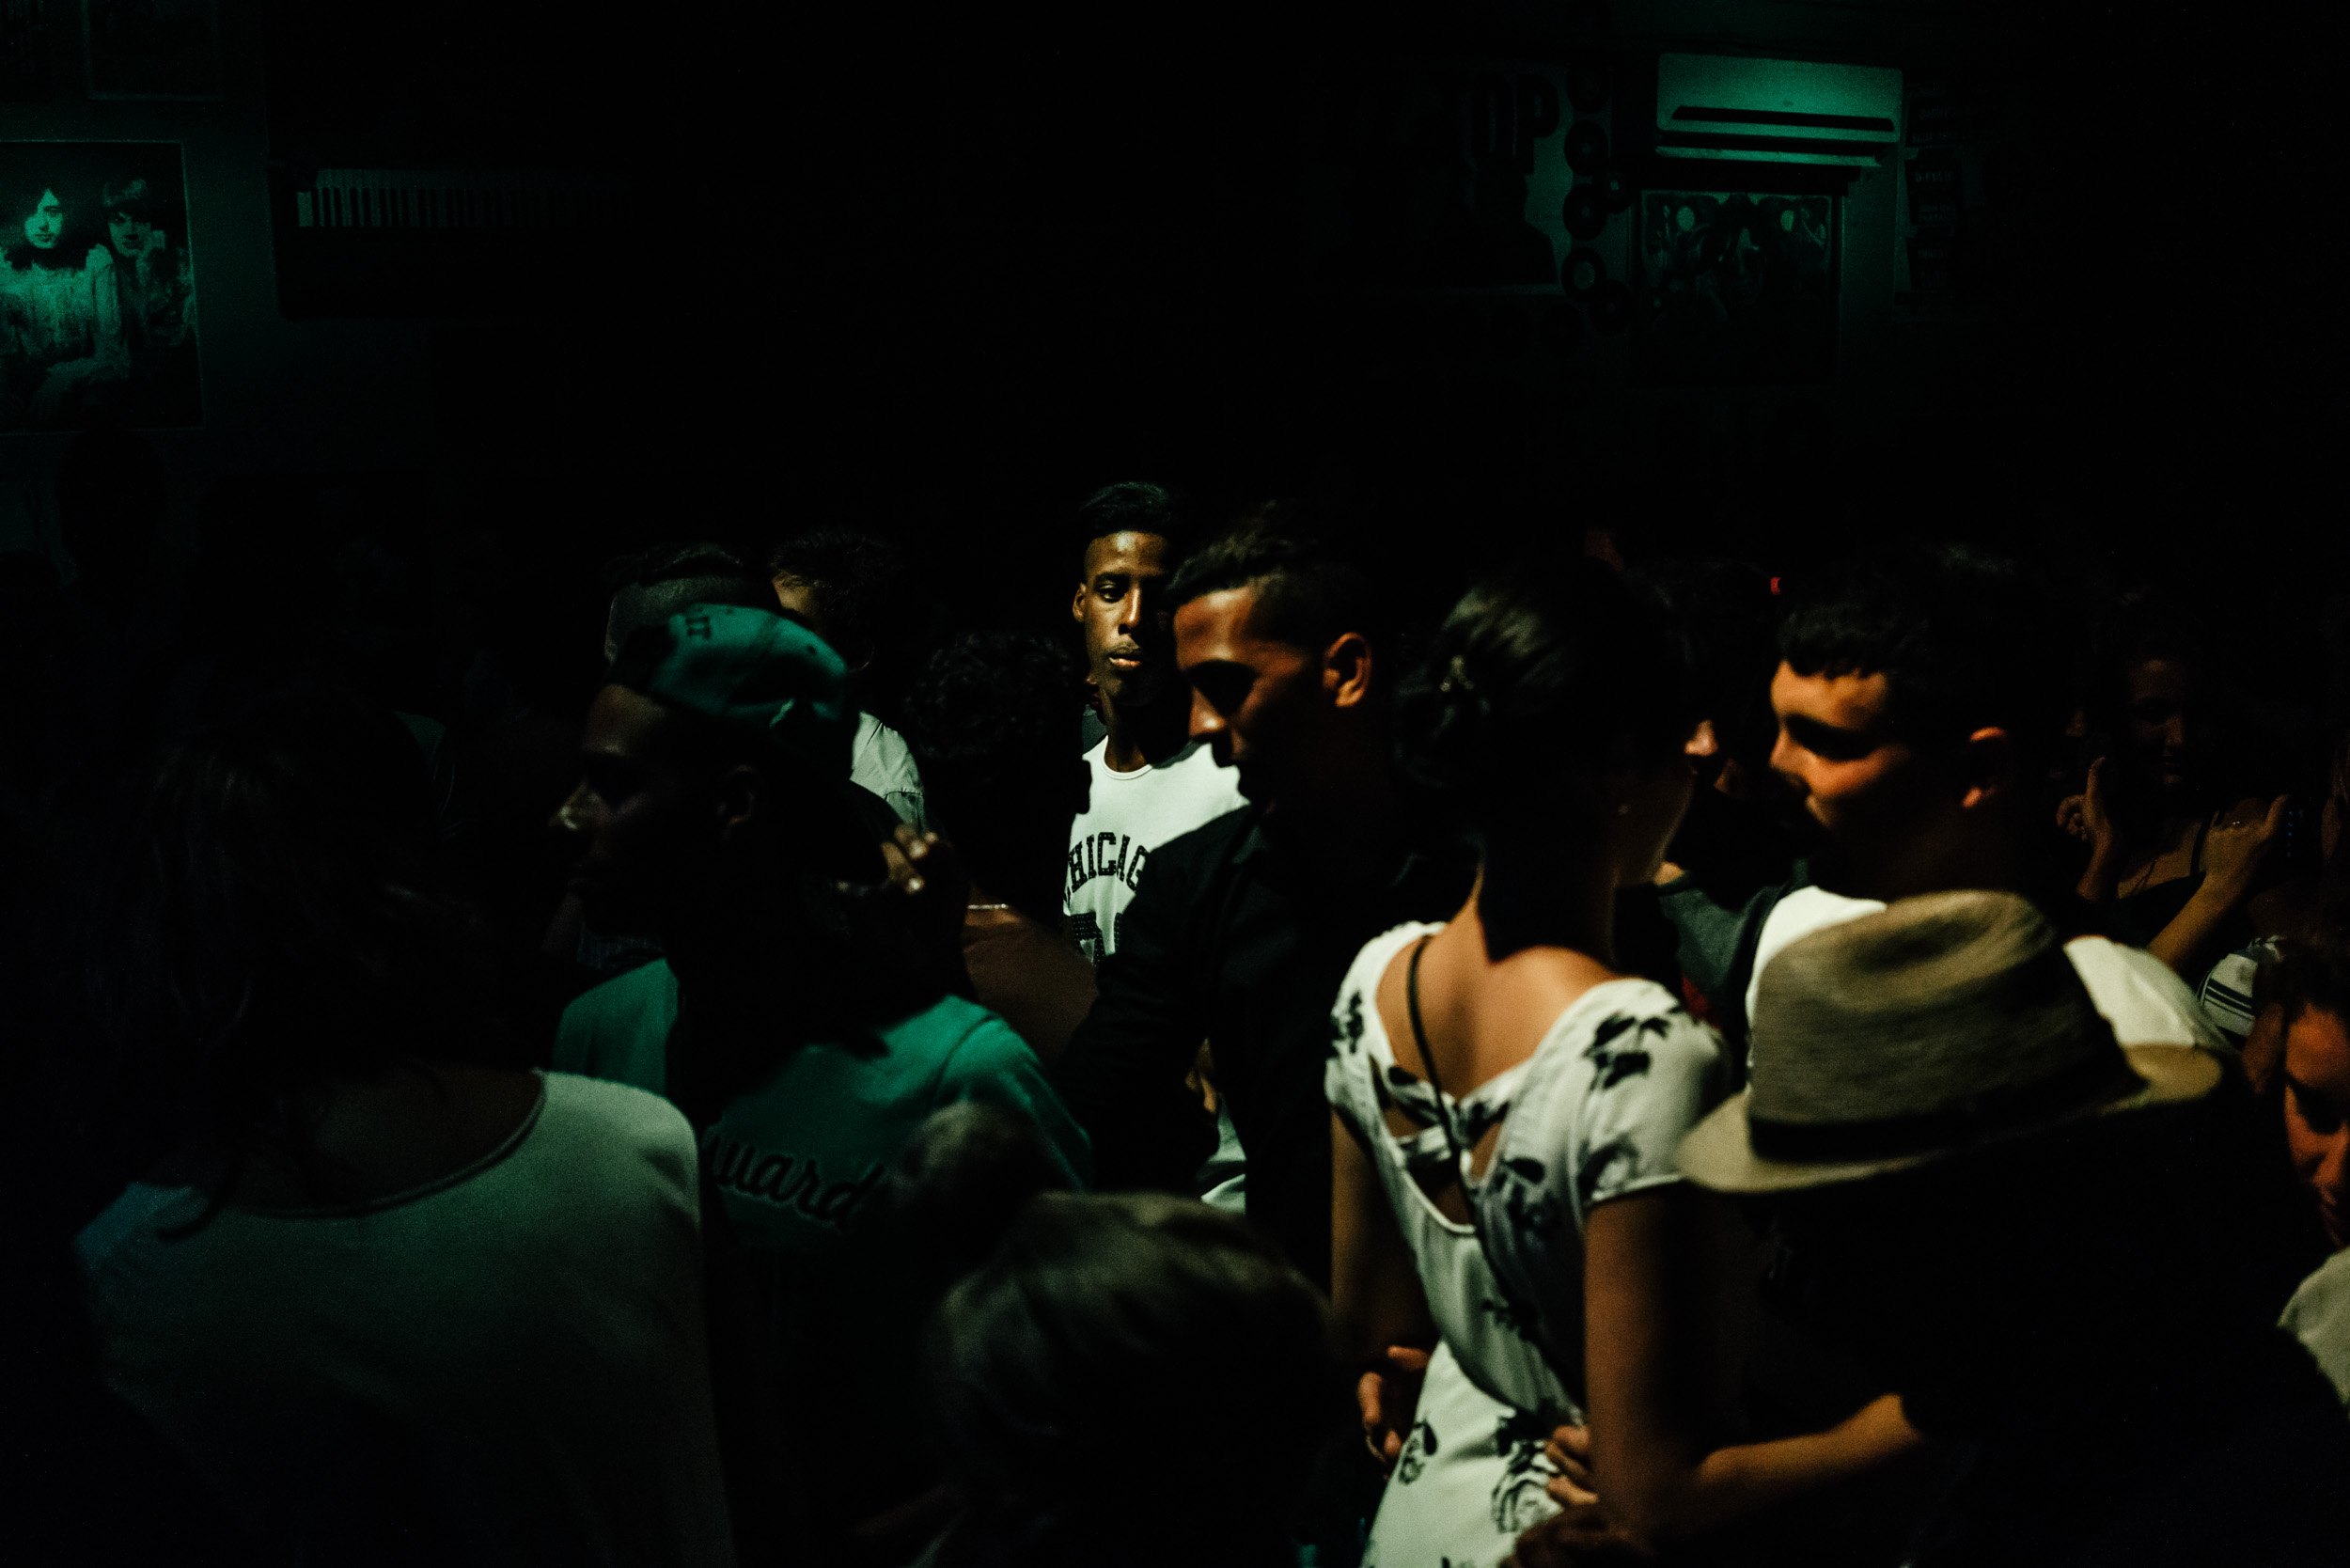 cubans at night club in Havana dark